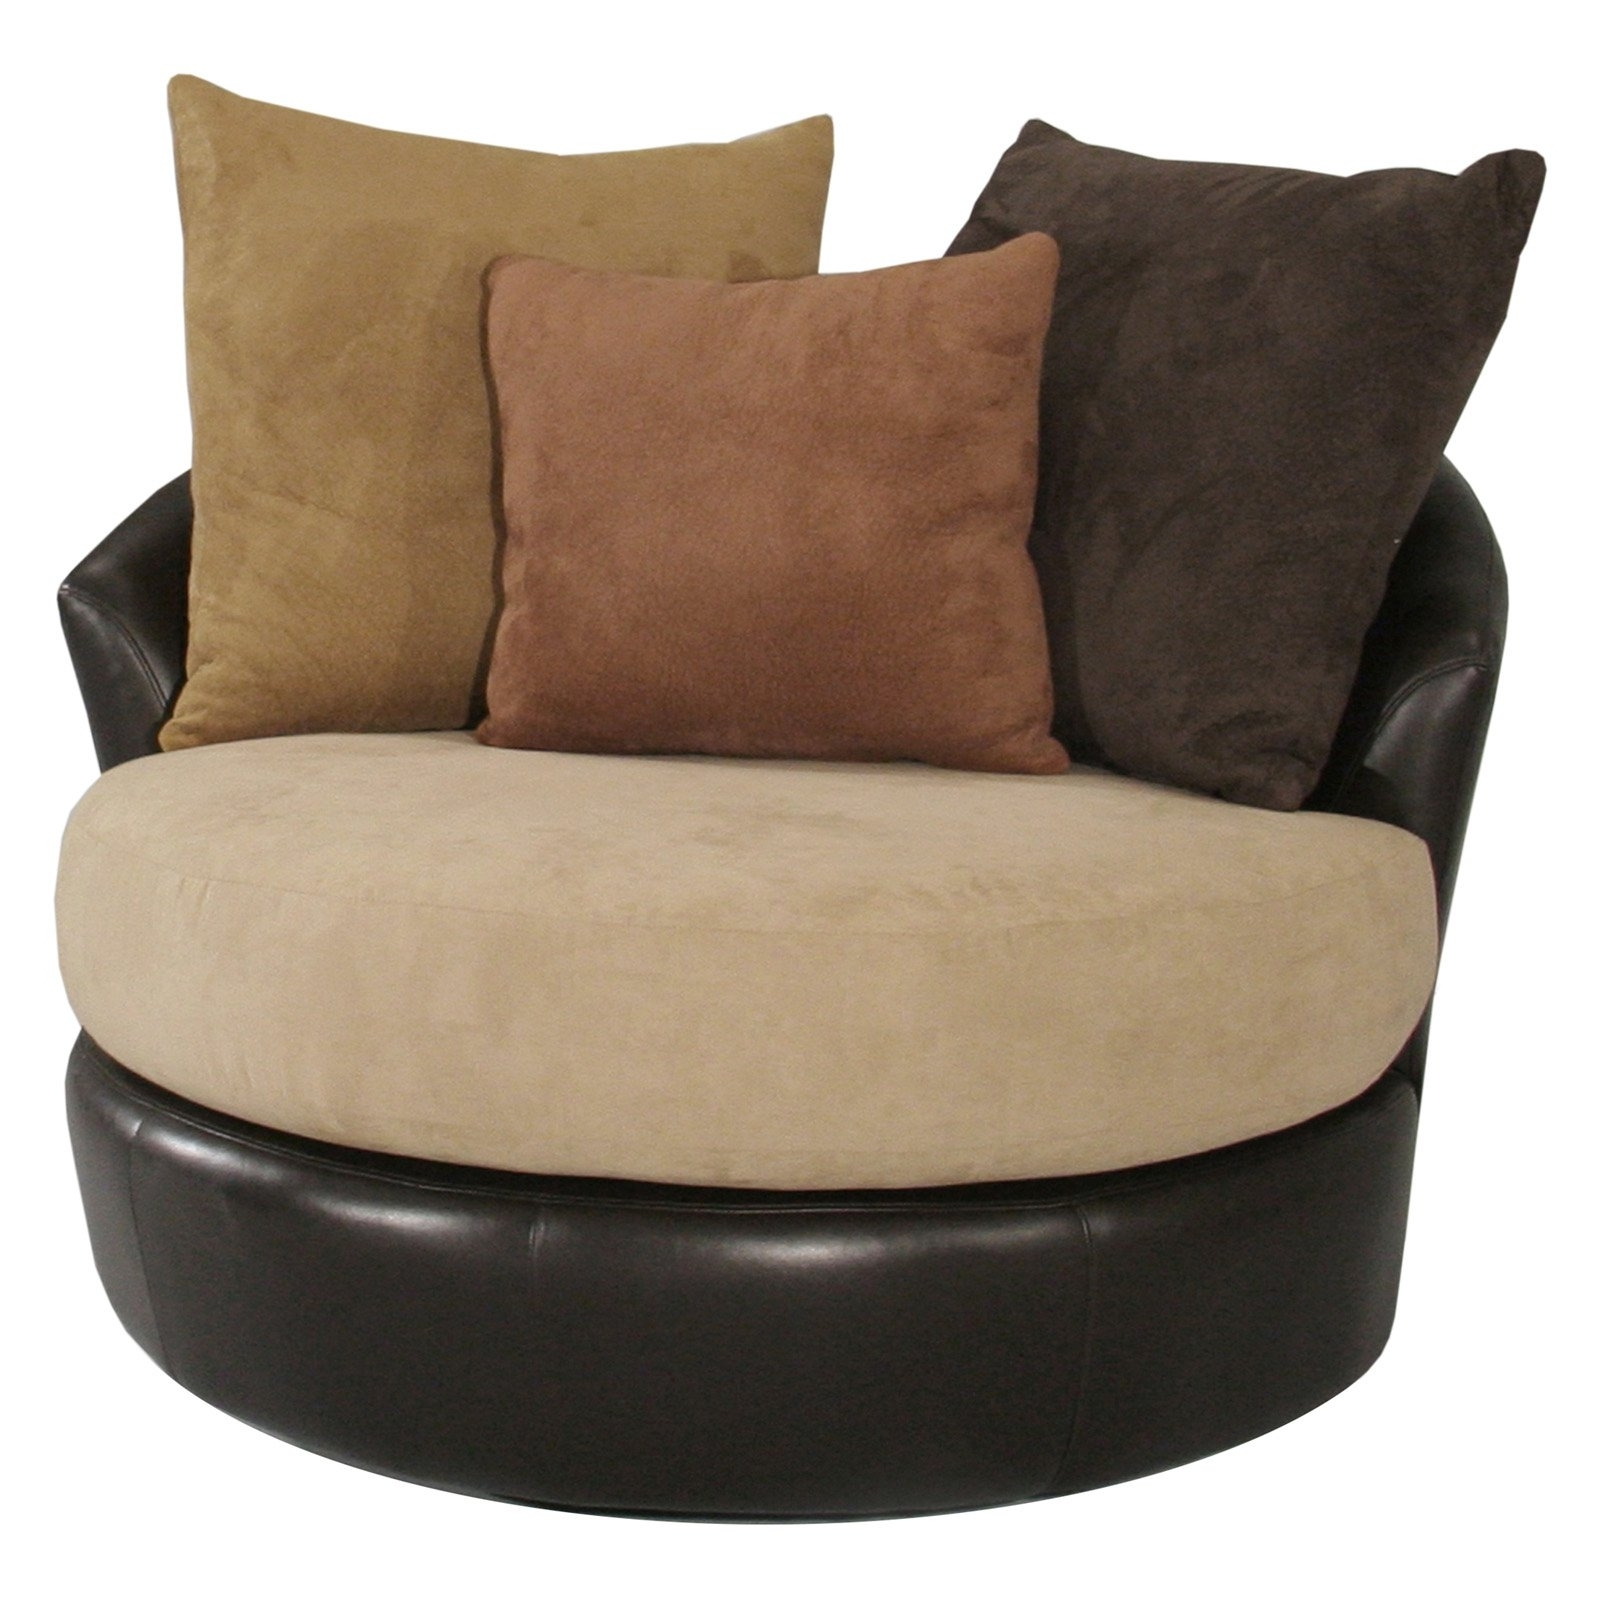 Trendy Outstanding Round Chaise Lounge Designs – Decofurnish Inside Round Chaises (View 14 of 15)